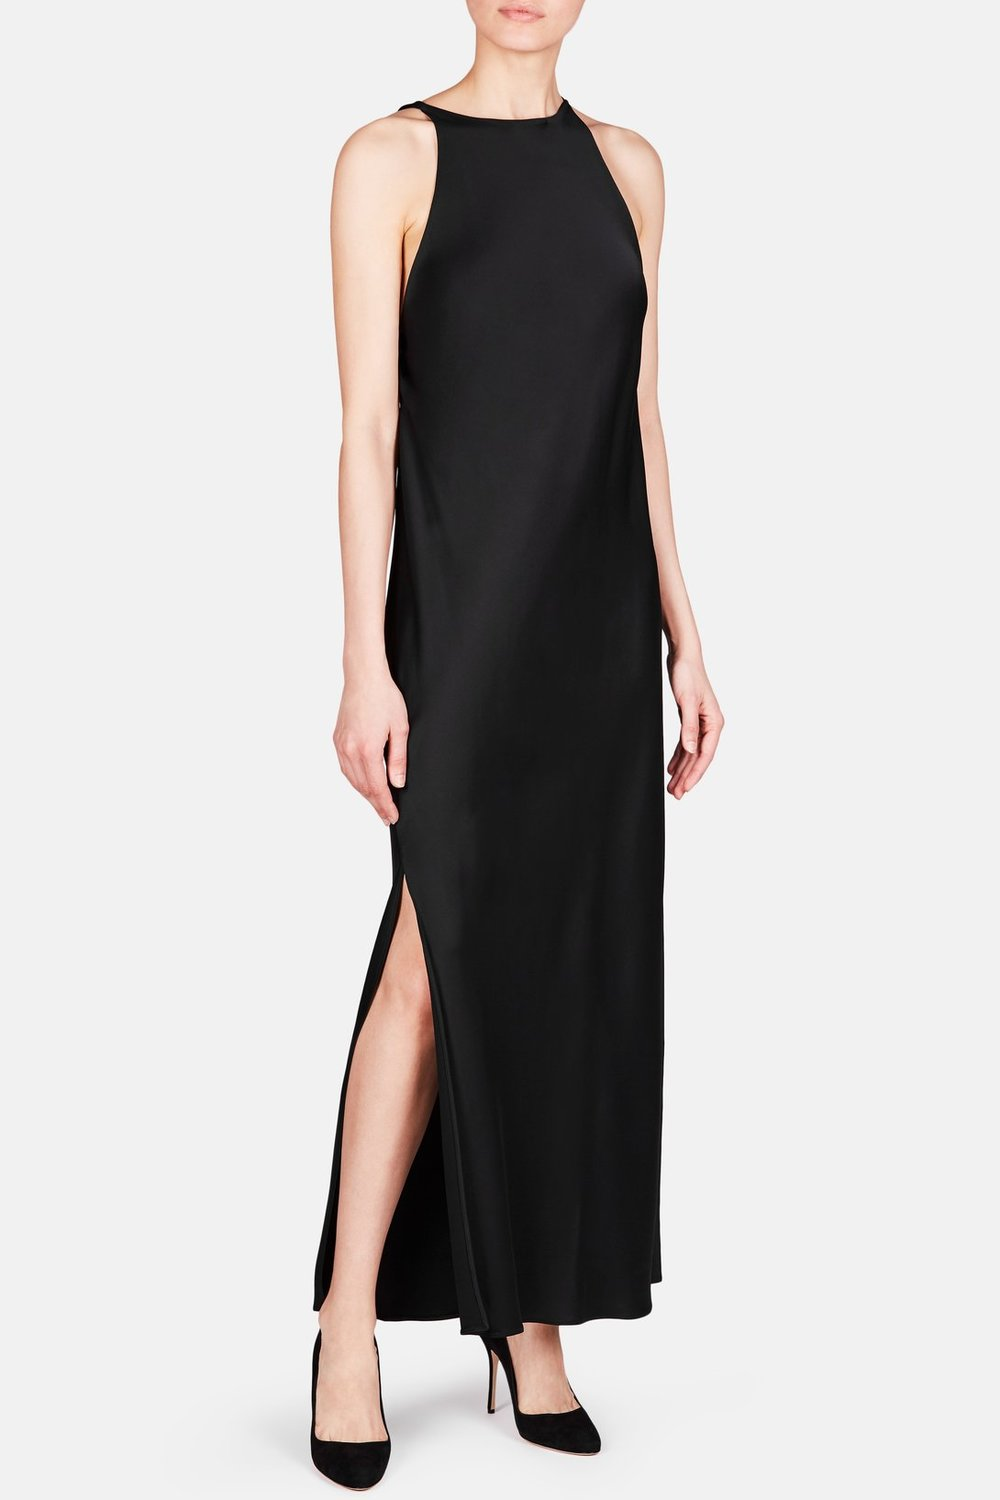 Khaite Dress, Was $1050 / Now $315